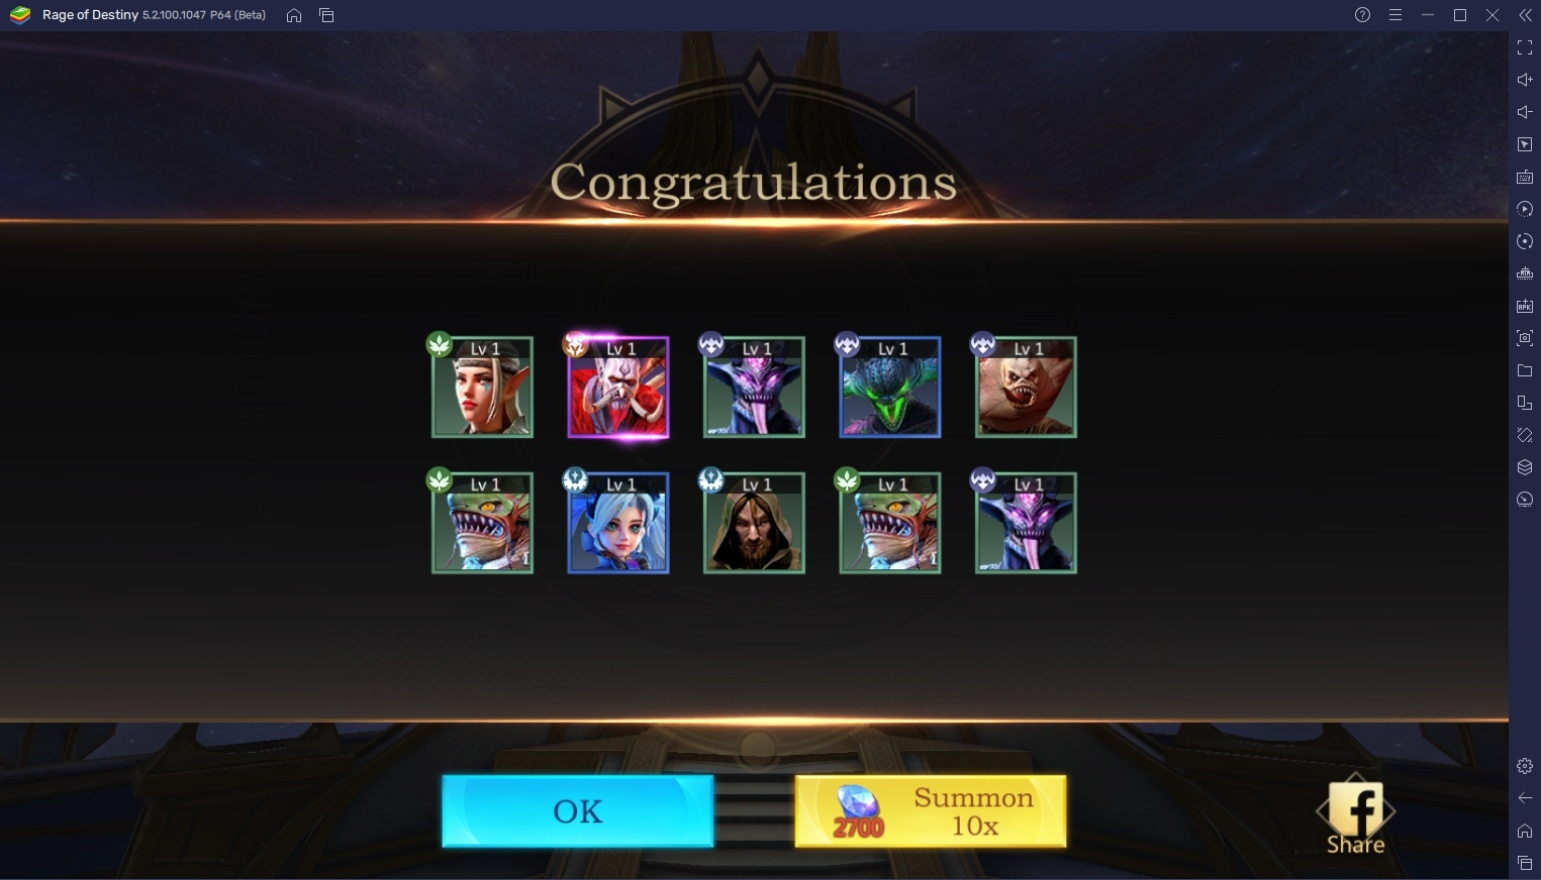 BlueStacks' Beginners Guide to Playing Rage of Destiny